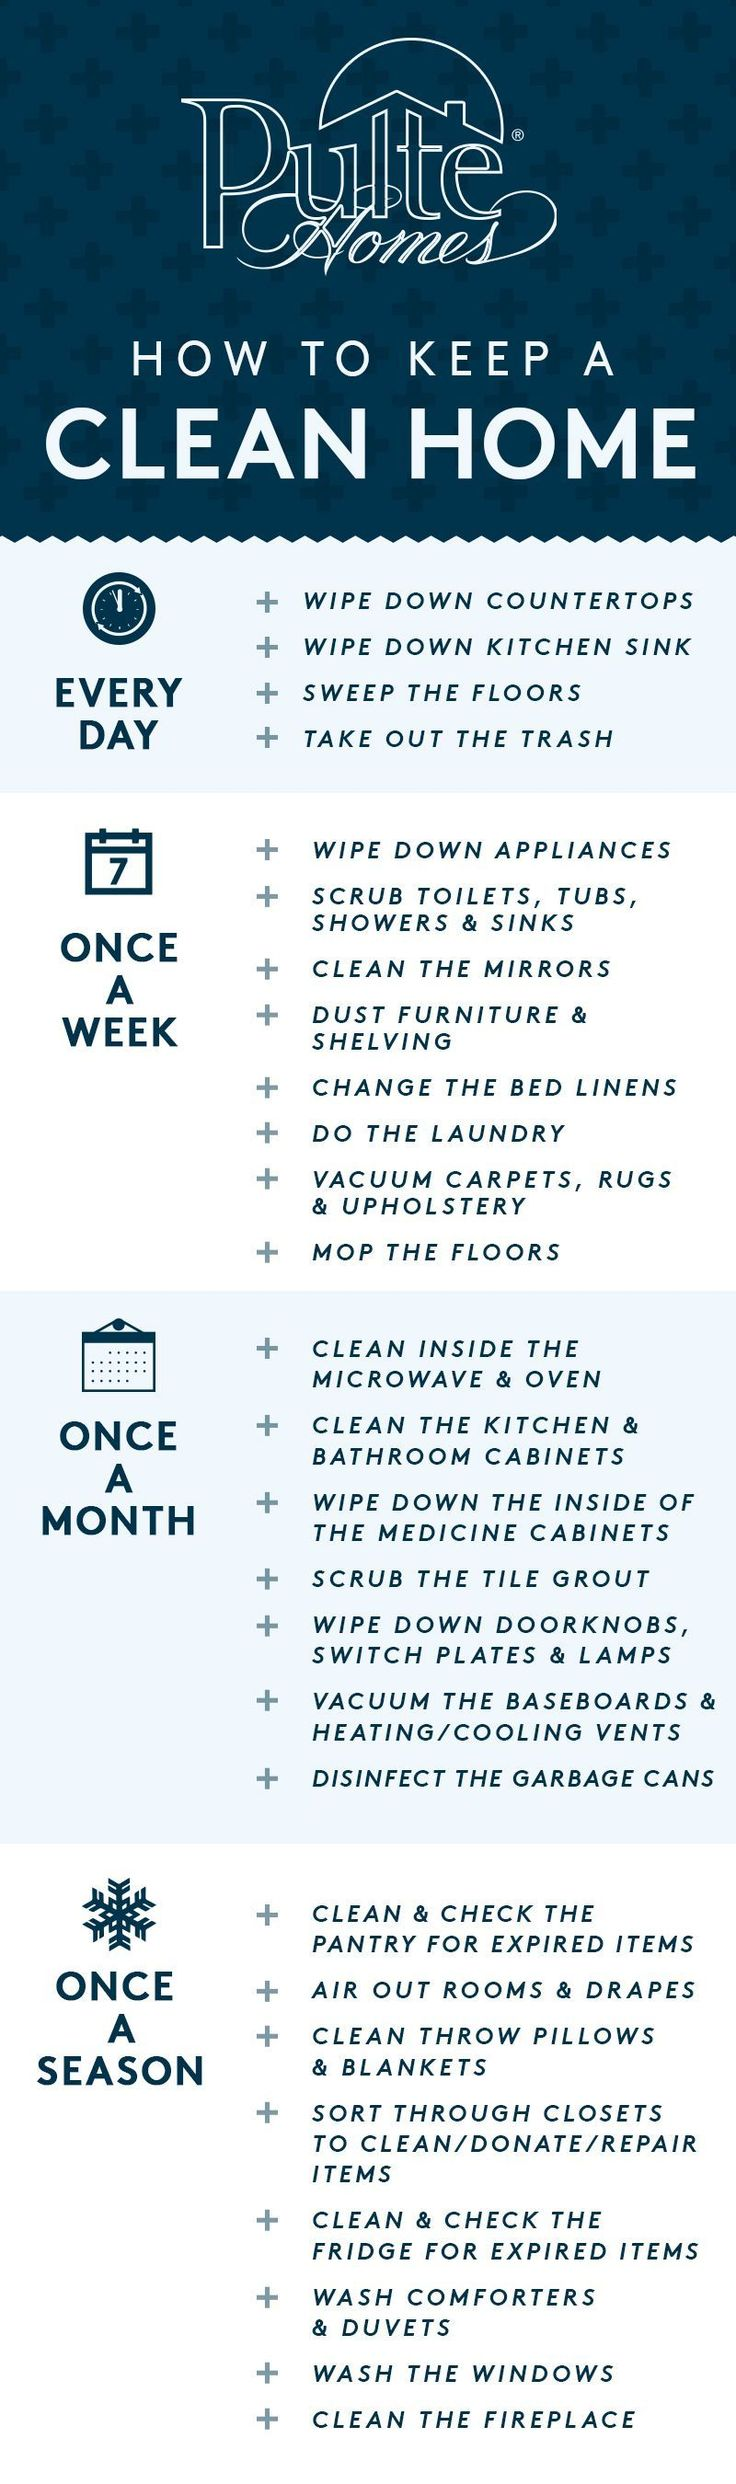 With the holidays around the corner, it's time to make sure your home is in guest-ready condition! Keep your house sparkling with these easy tips on how often to clean each corner of your home. PIN now and use later as your go-to checklist! | Pulte Homes #cluttertoclean